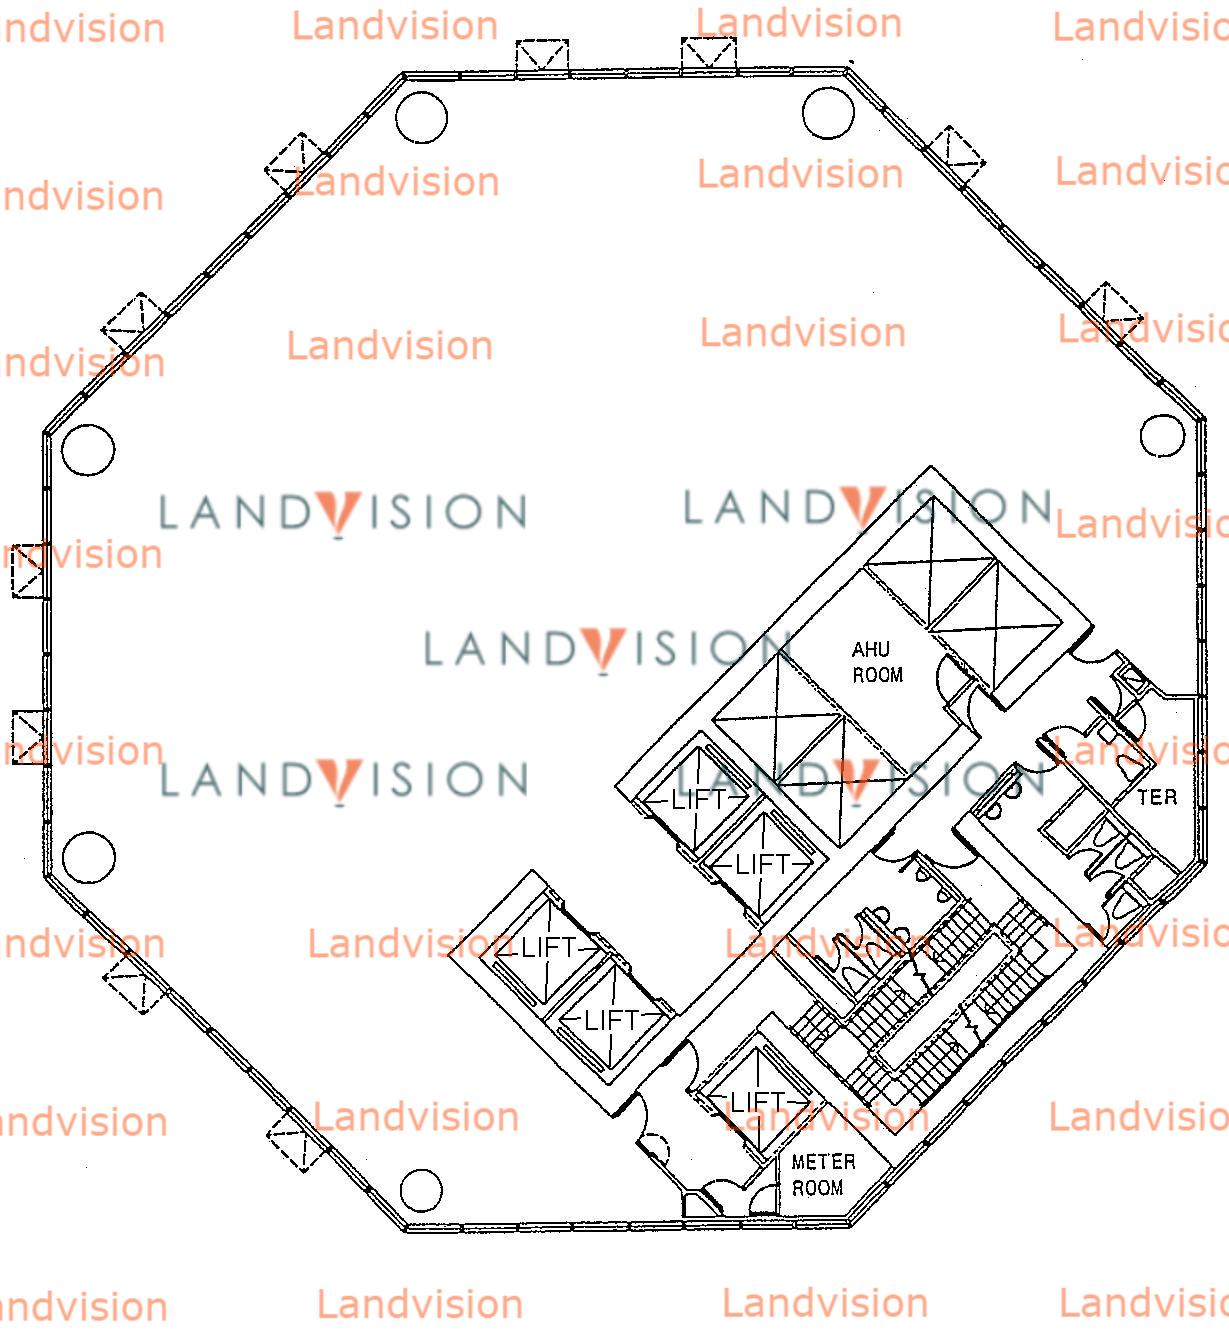 https://www.landvision.com.hk/wp-content/uploads/website/resize/floorplans/001098.JPG